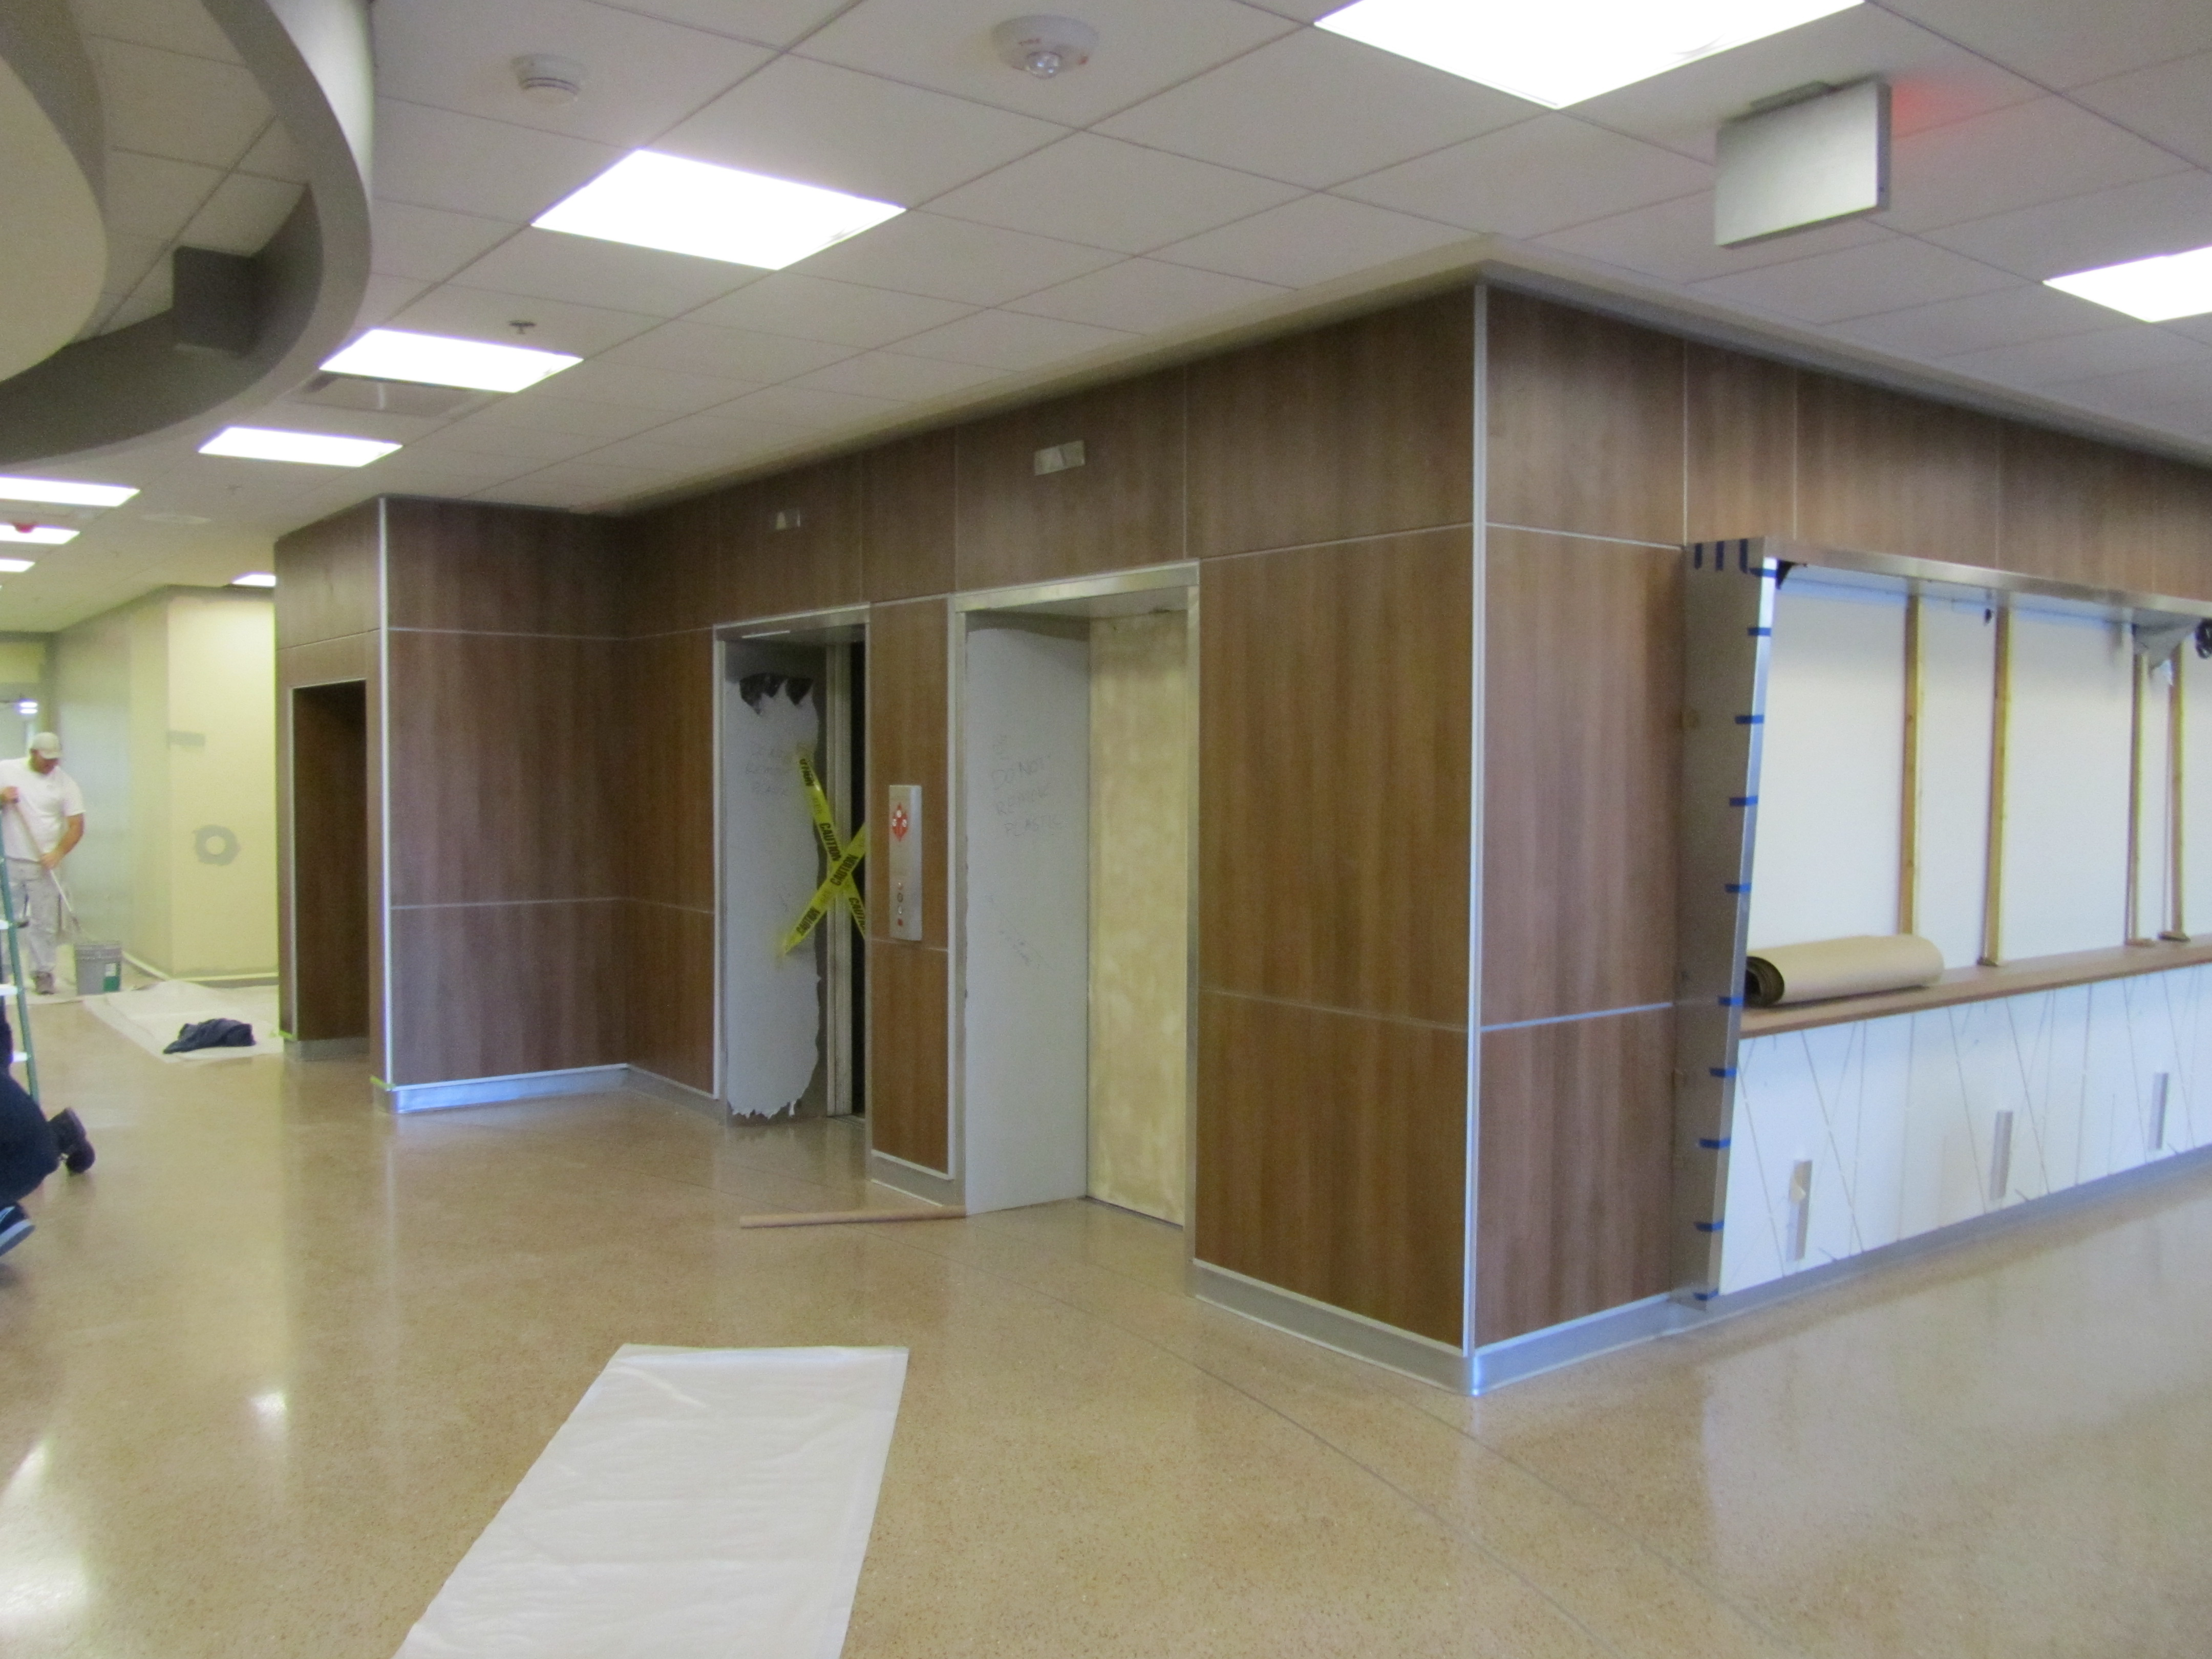 Elevator Bank/Feature Wall